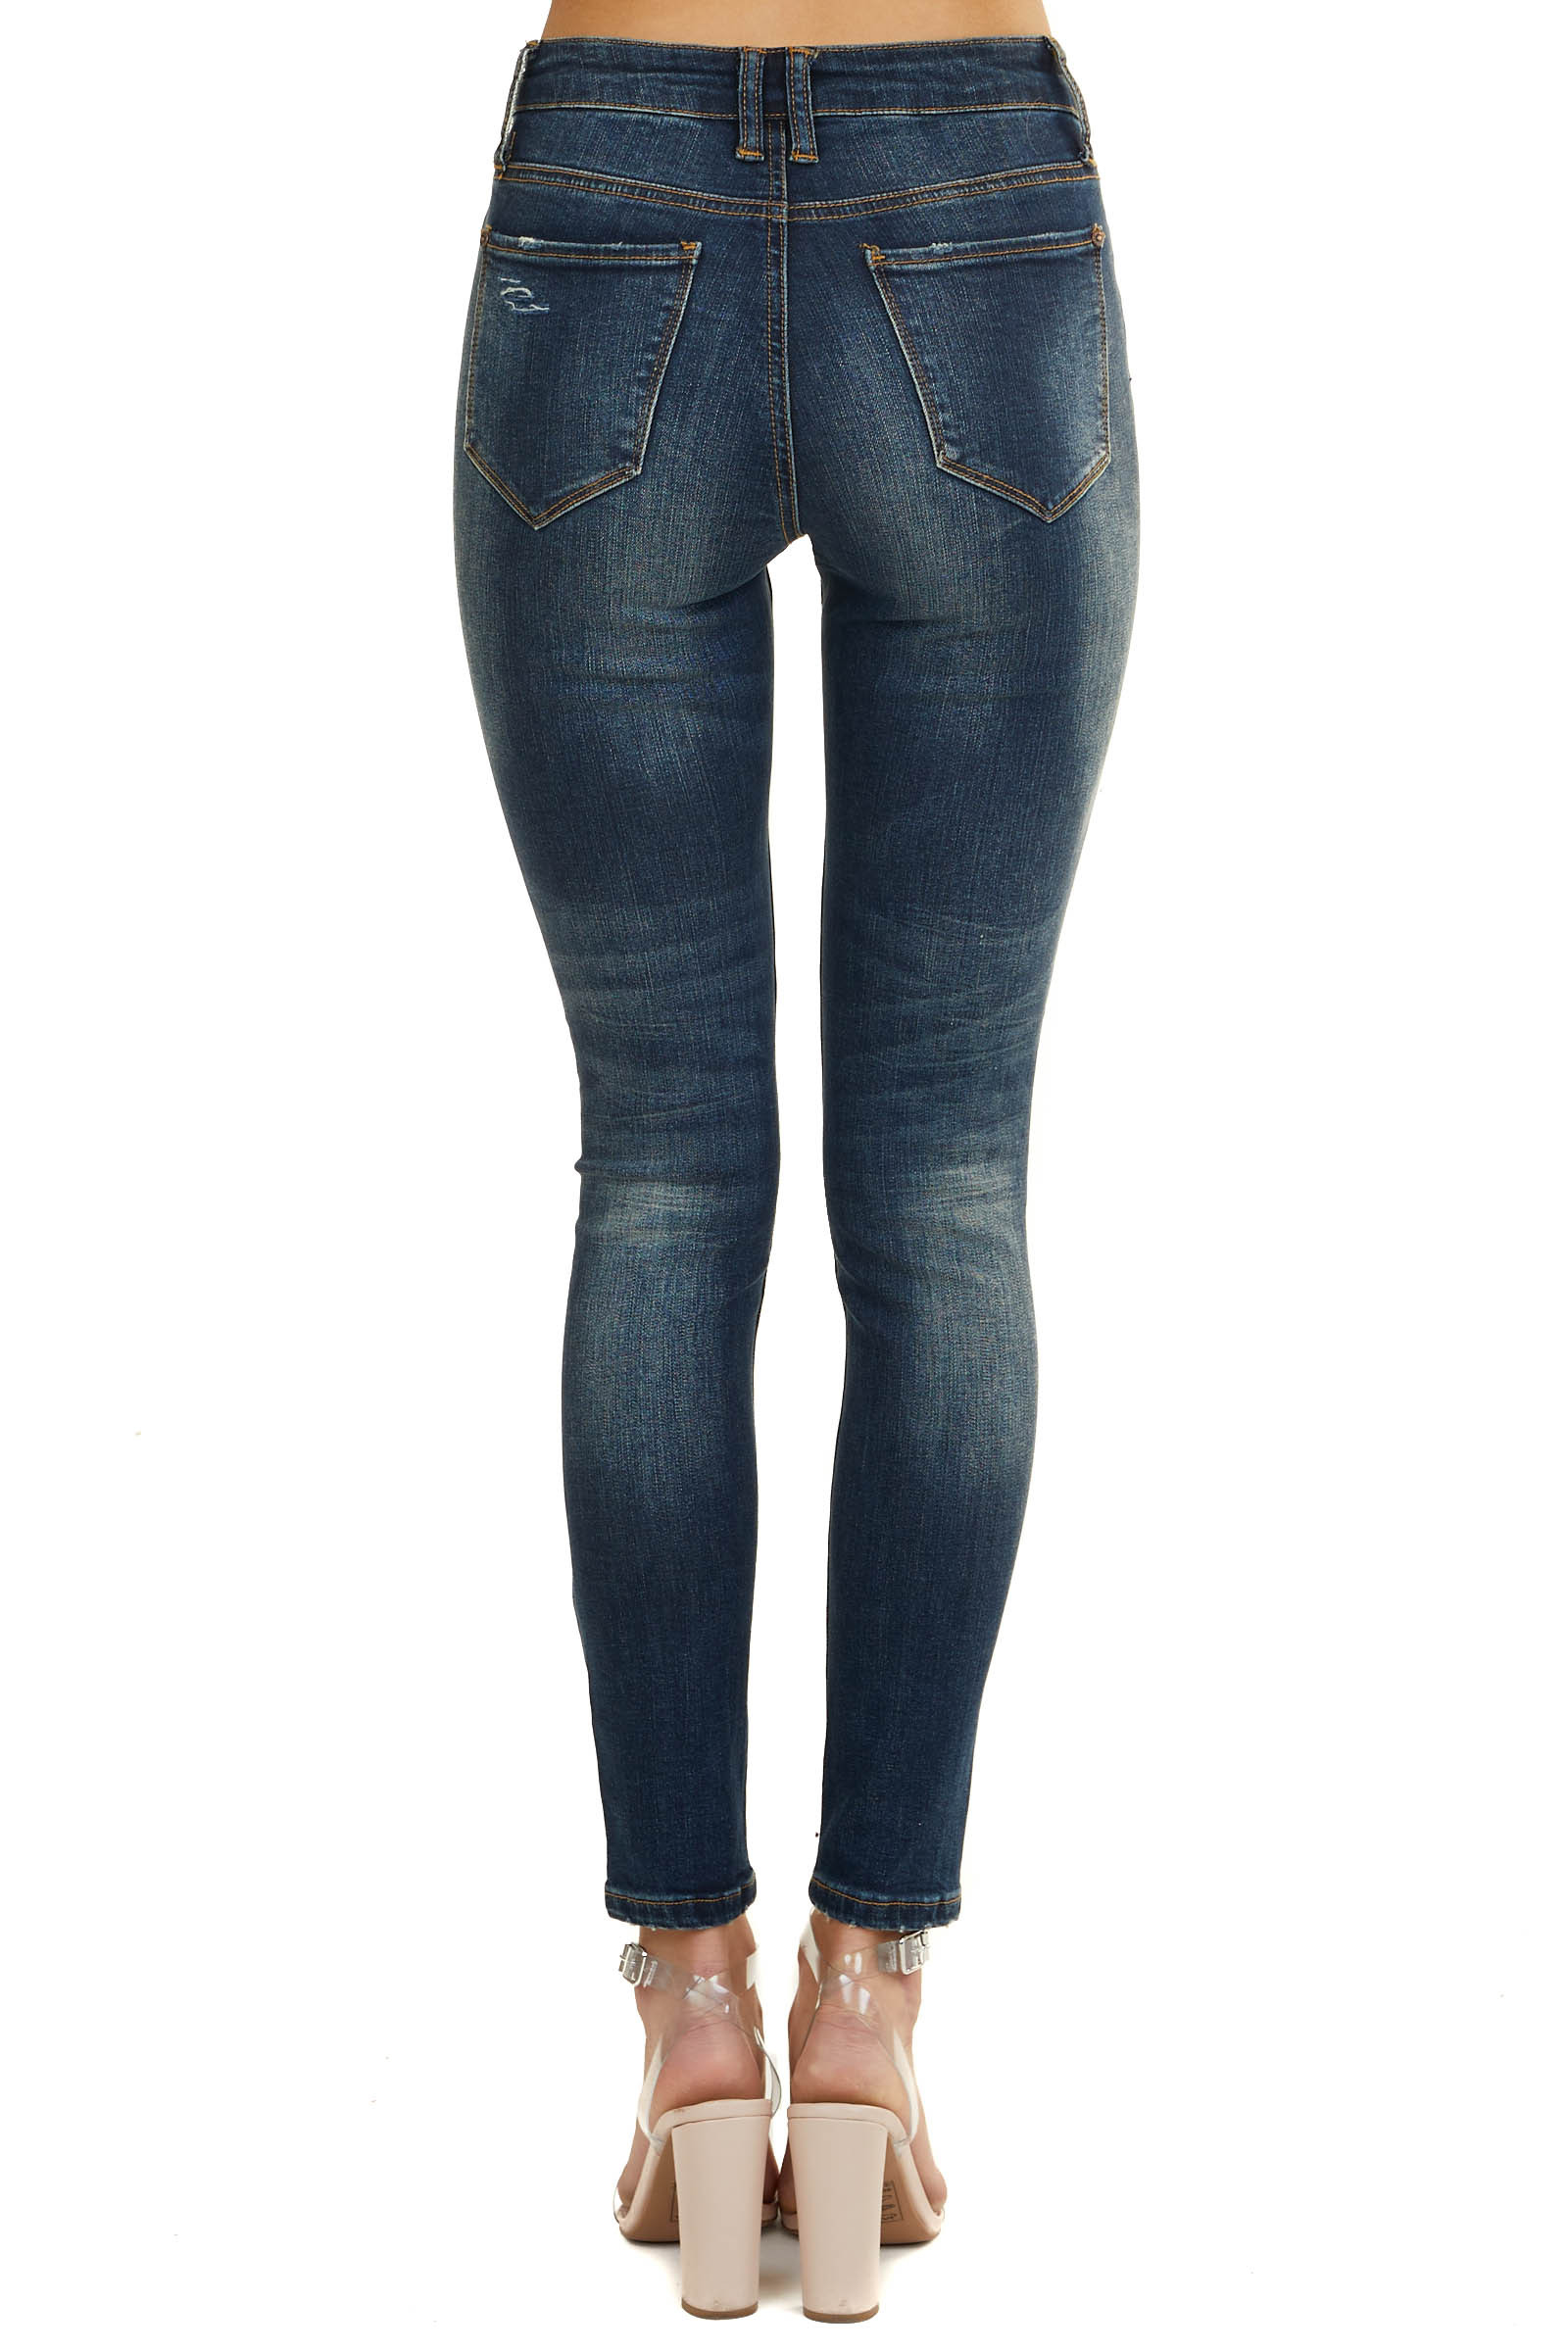 Dark Wash Mid Rise Skinny Jeans with Distressed Cuts